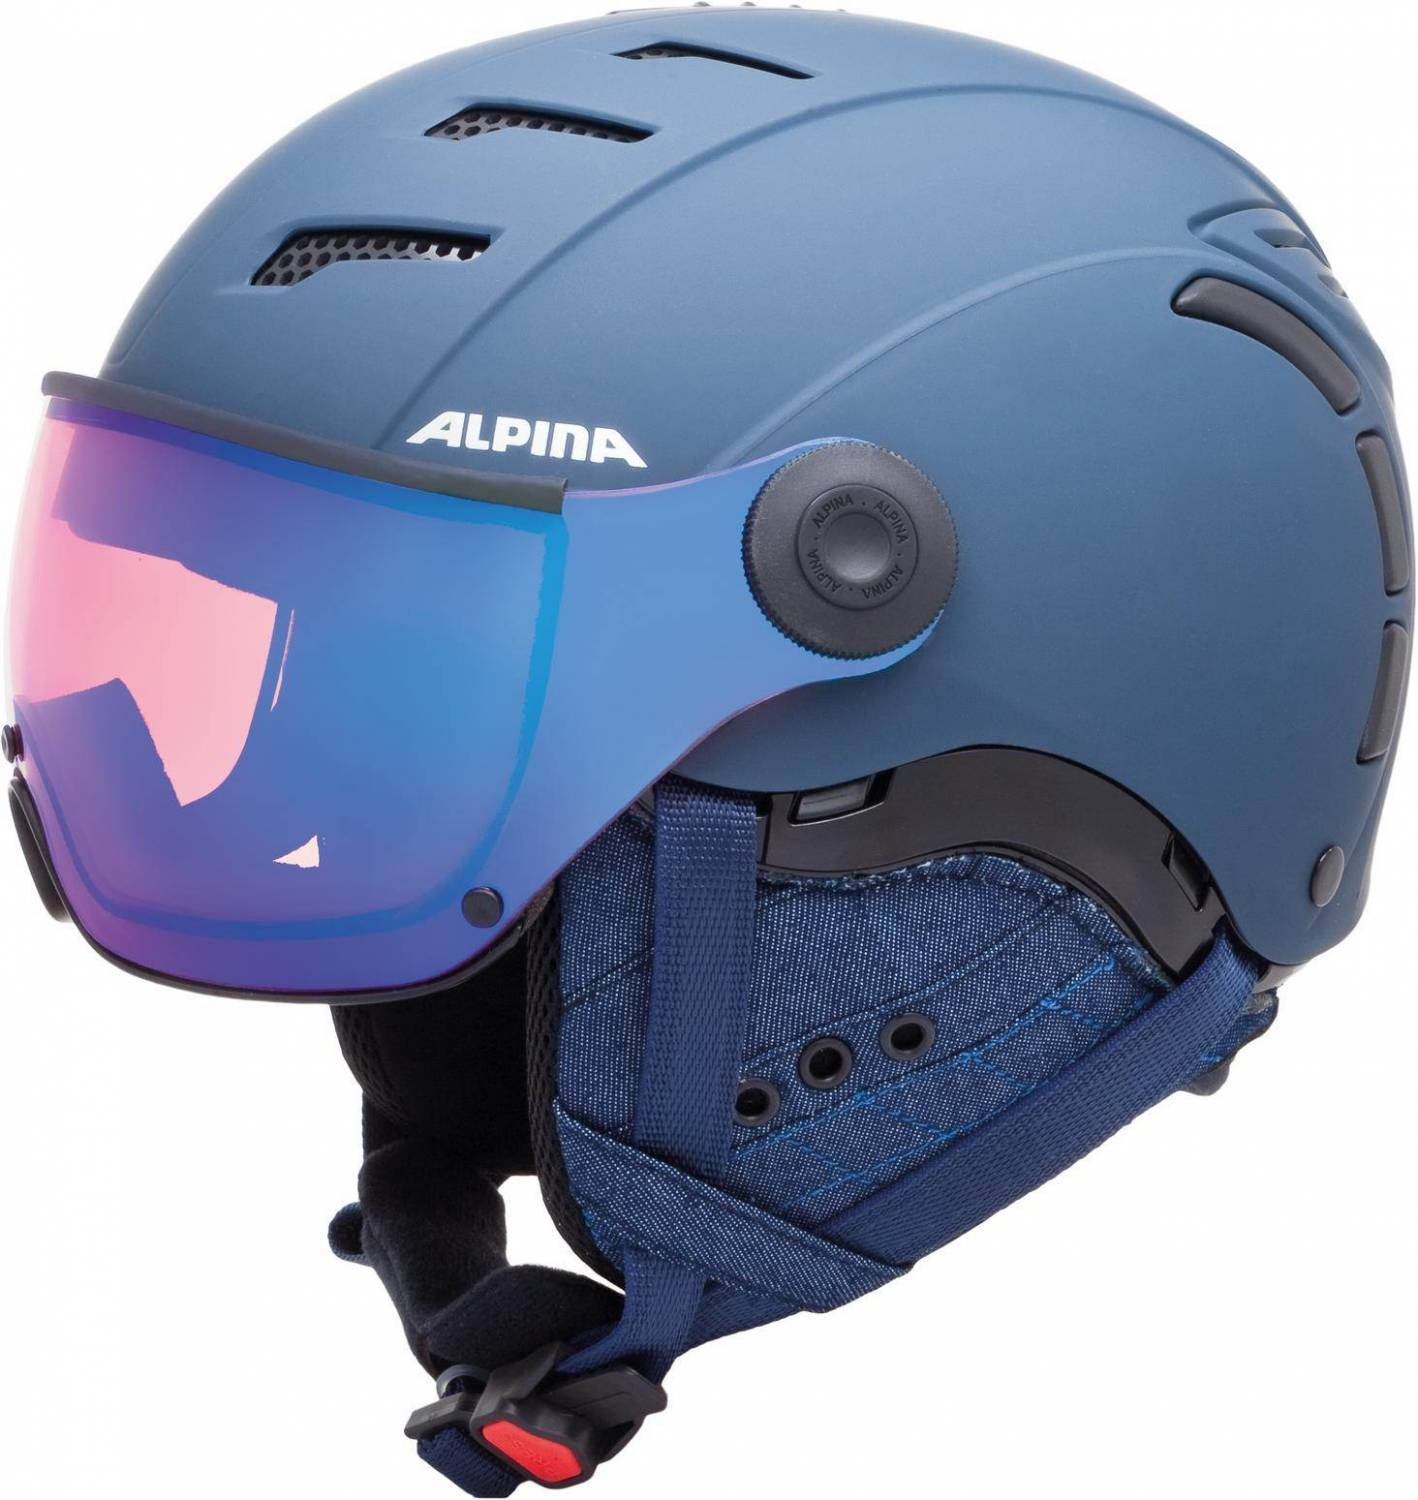 alpina-jump-2-0-quattrovarioflex-mm-skihelm-gr-ouml-szlig-e-52-54-cm-82-nightblue-denim-matt-